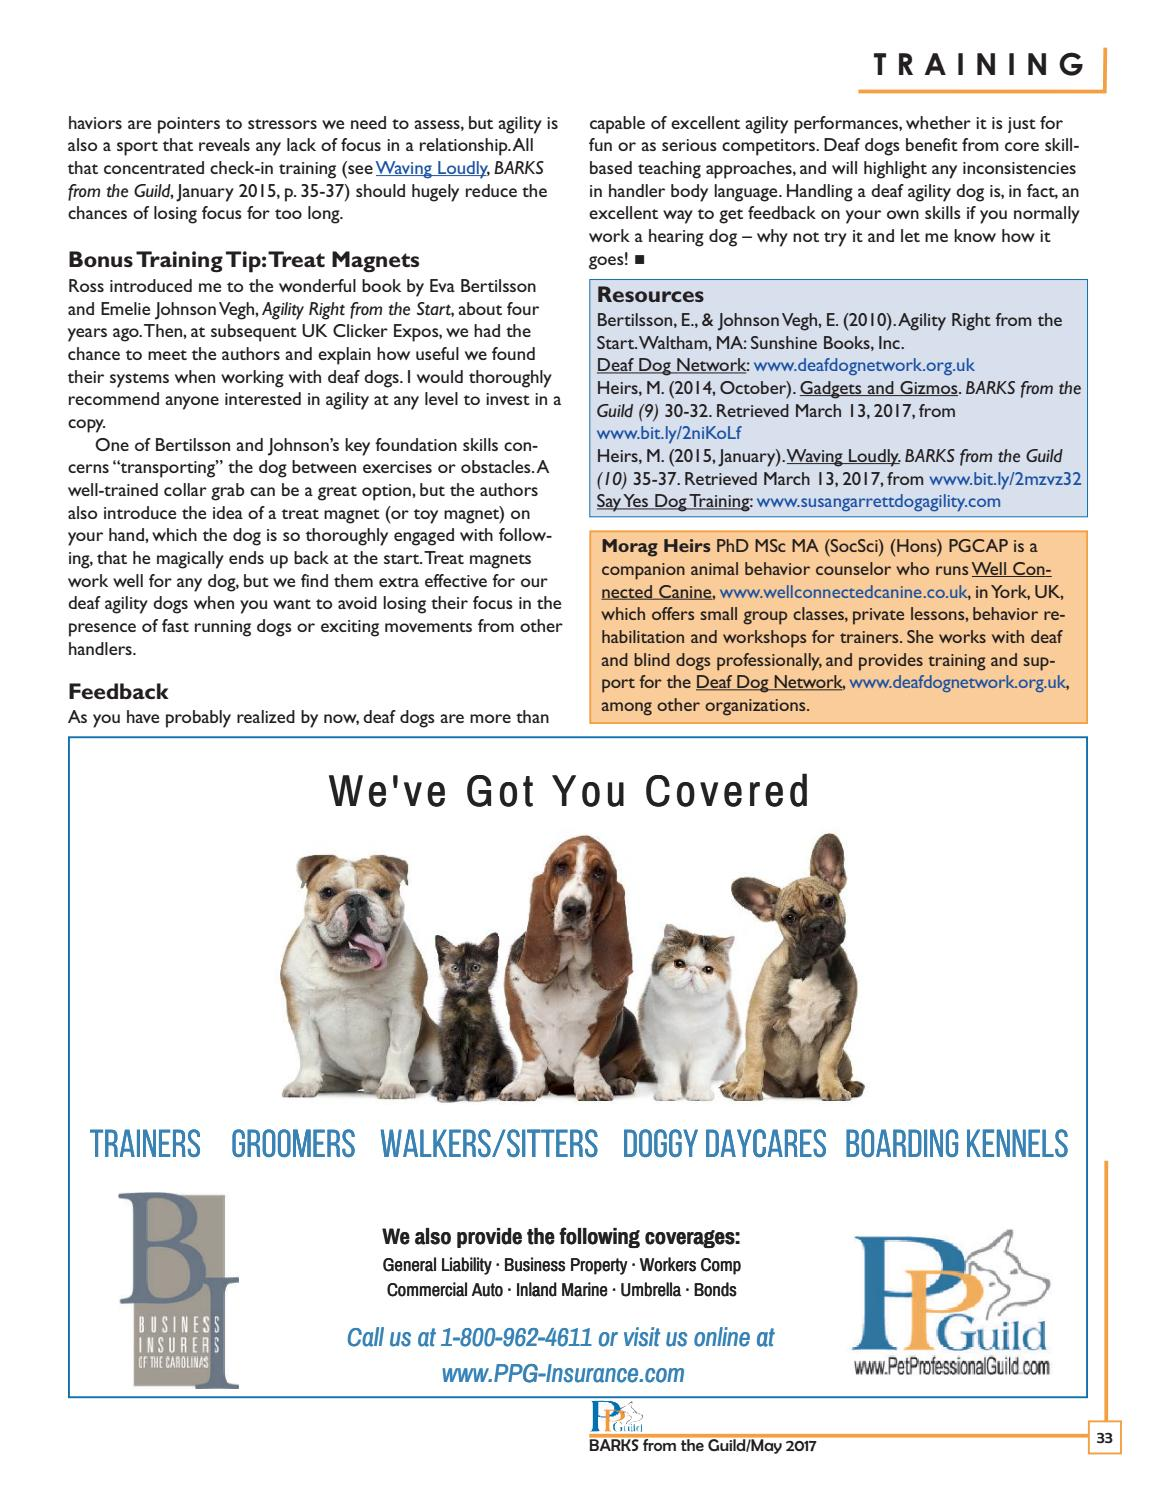 Barks From The Guild May 2017 By The Pet Professional Guild Issuu